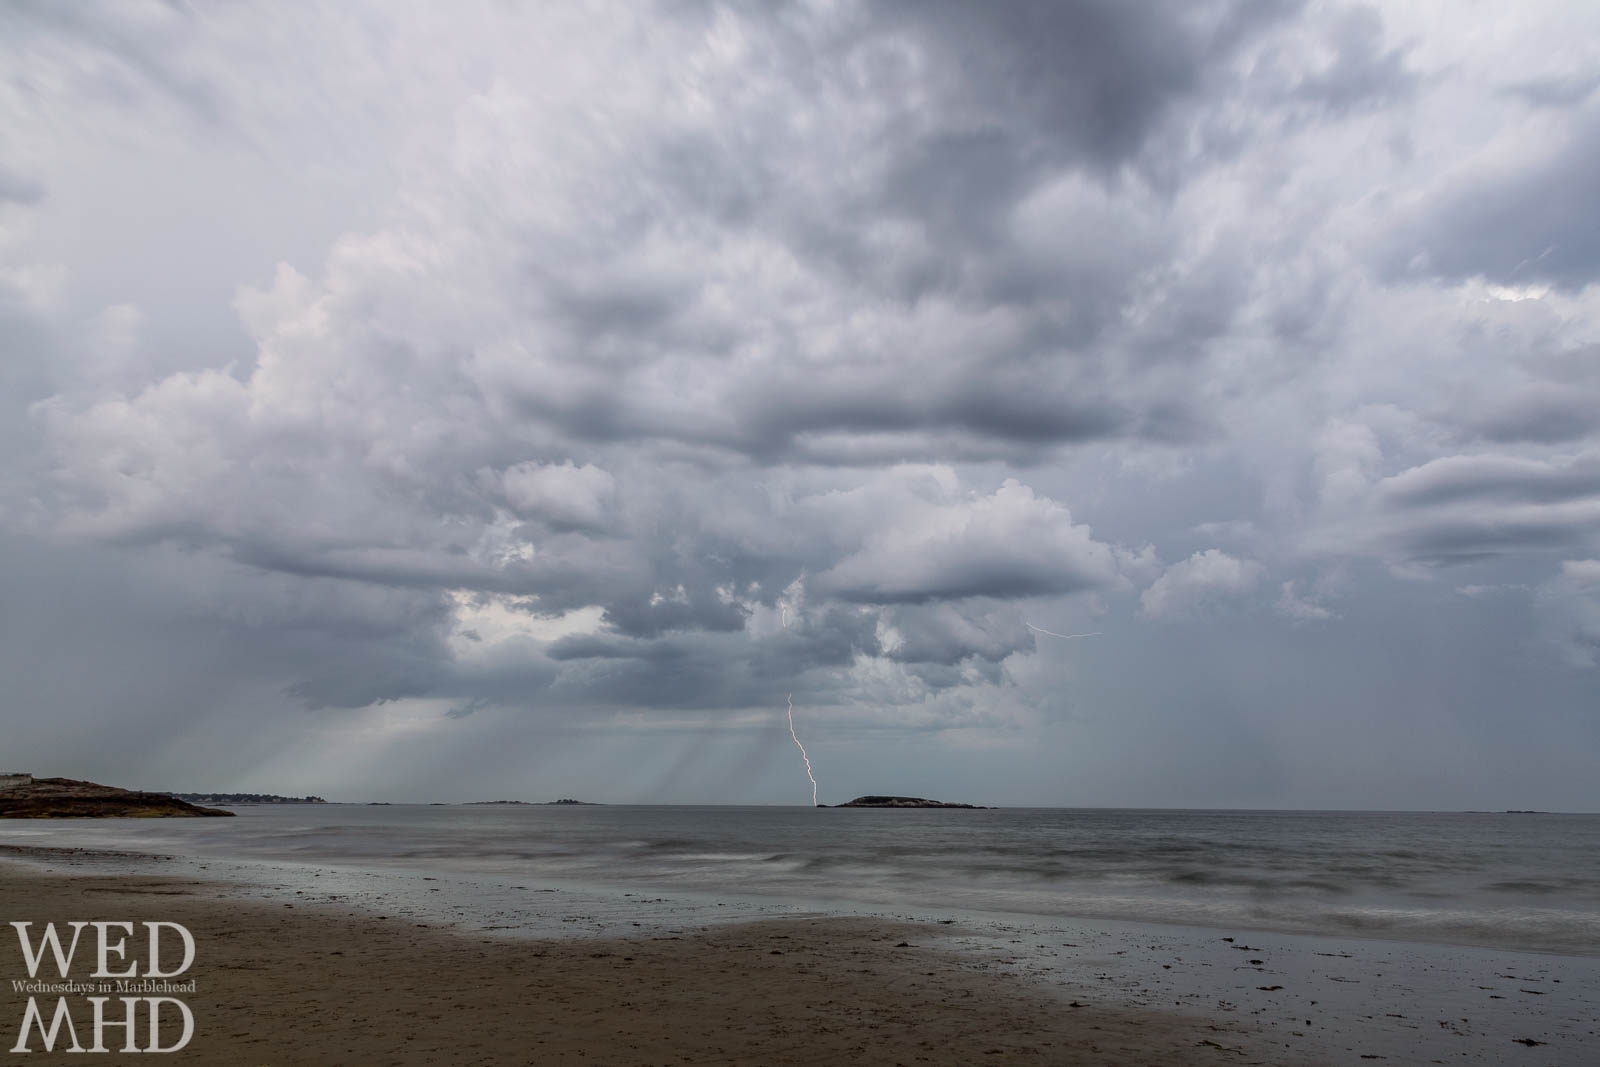 A bolt of lightning misses hitting Ram Island in the waters of Preston Beach